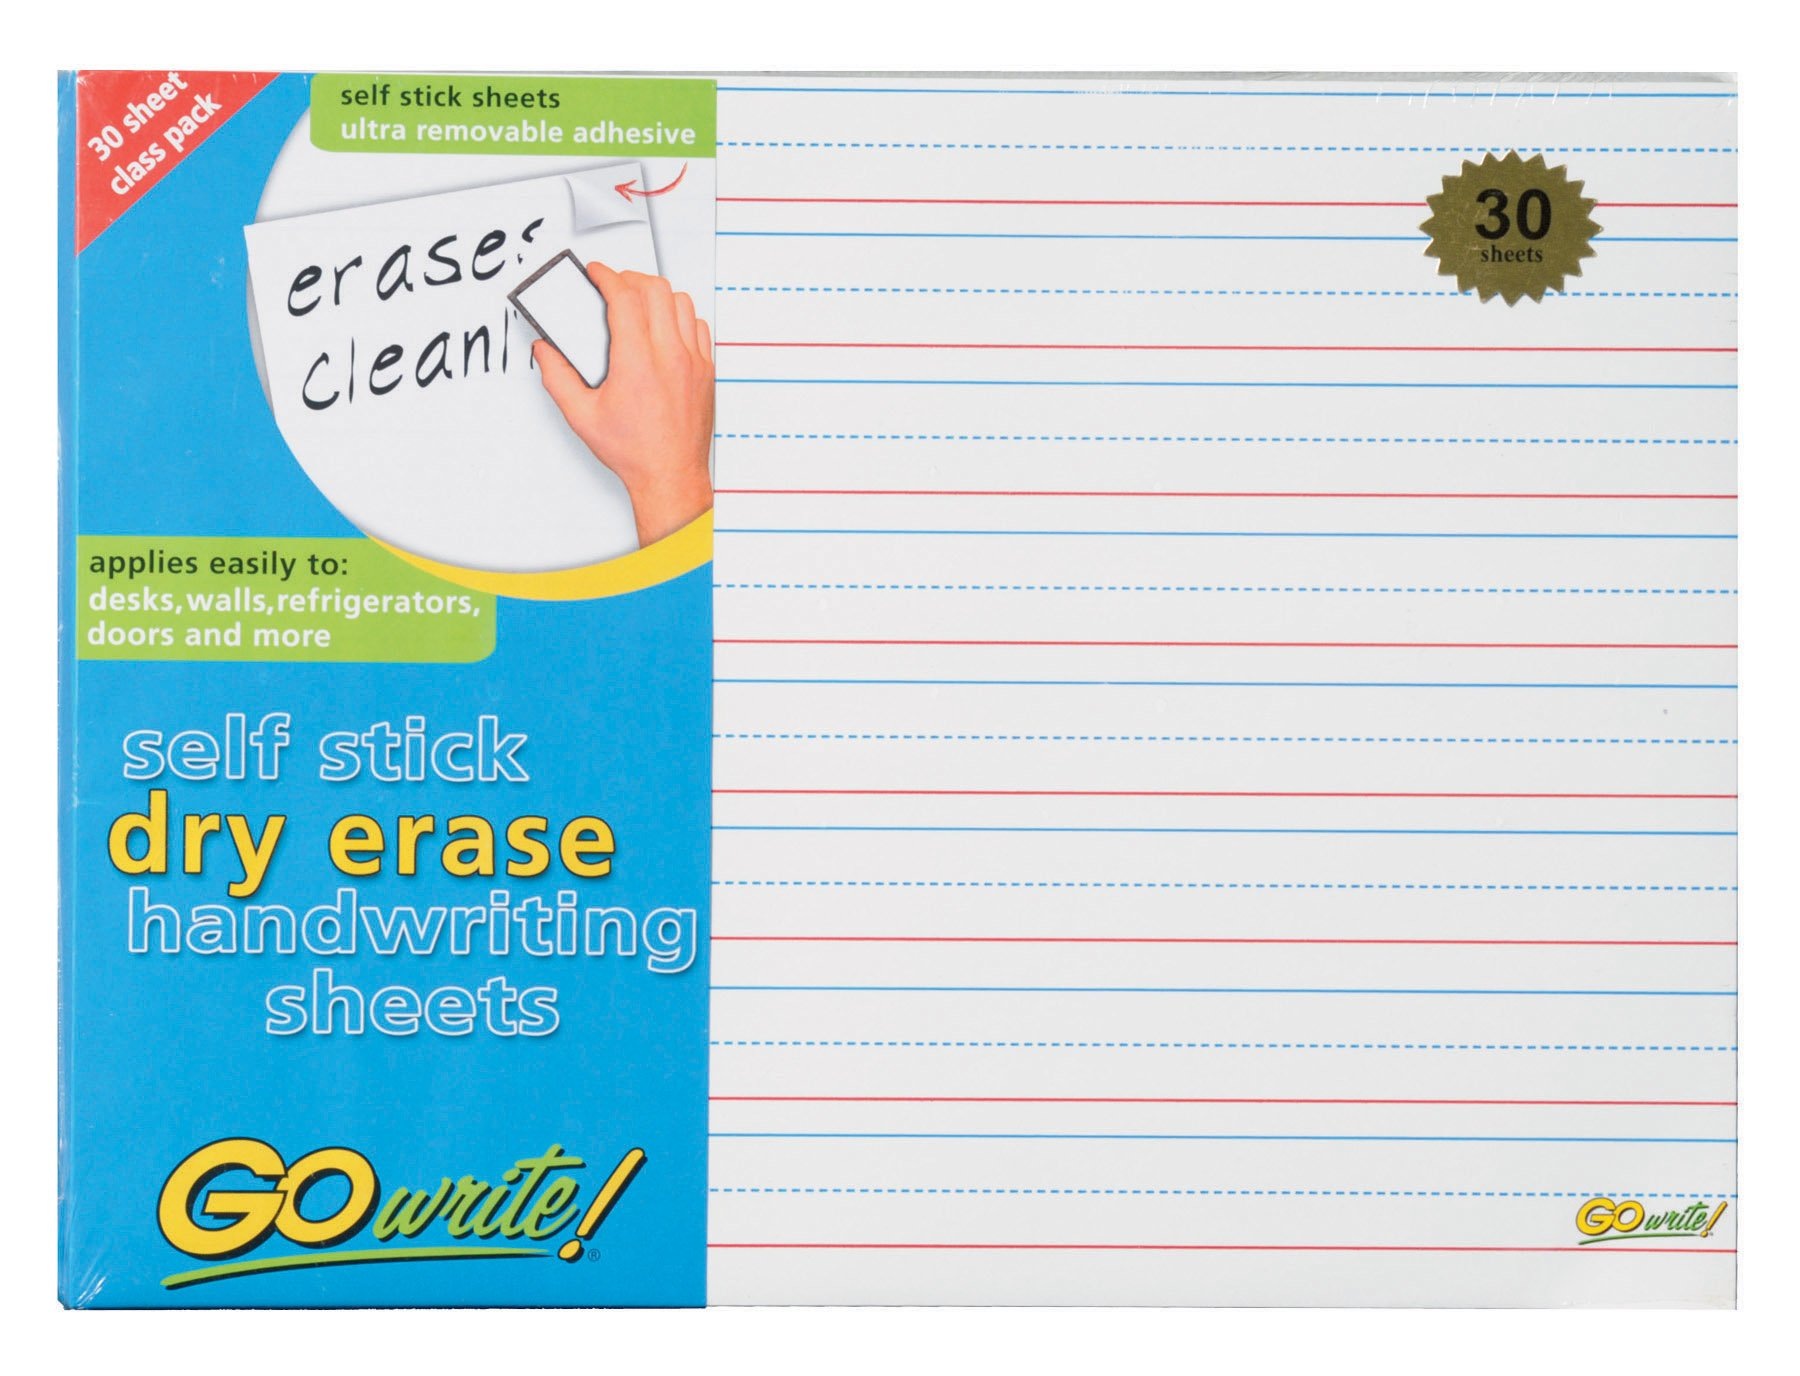 GoWrite! Dry Erase Self-Adhesive Handwriting Sheets, 11-Inches by 8.25-Inches, 30 Pack (ASB8511LN)